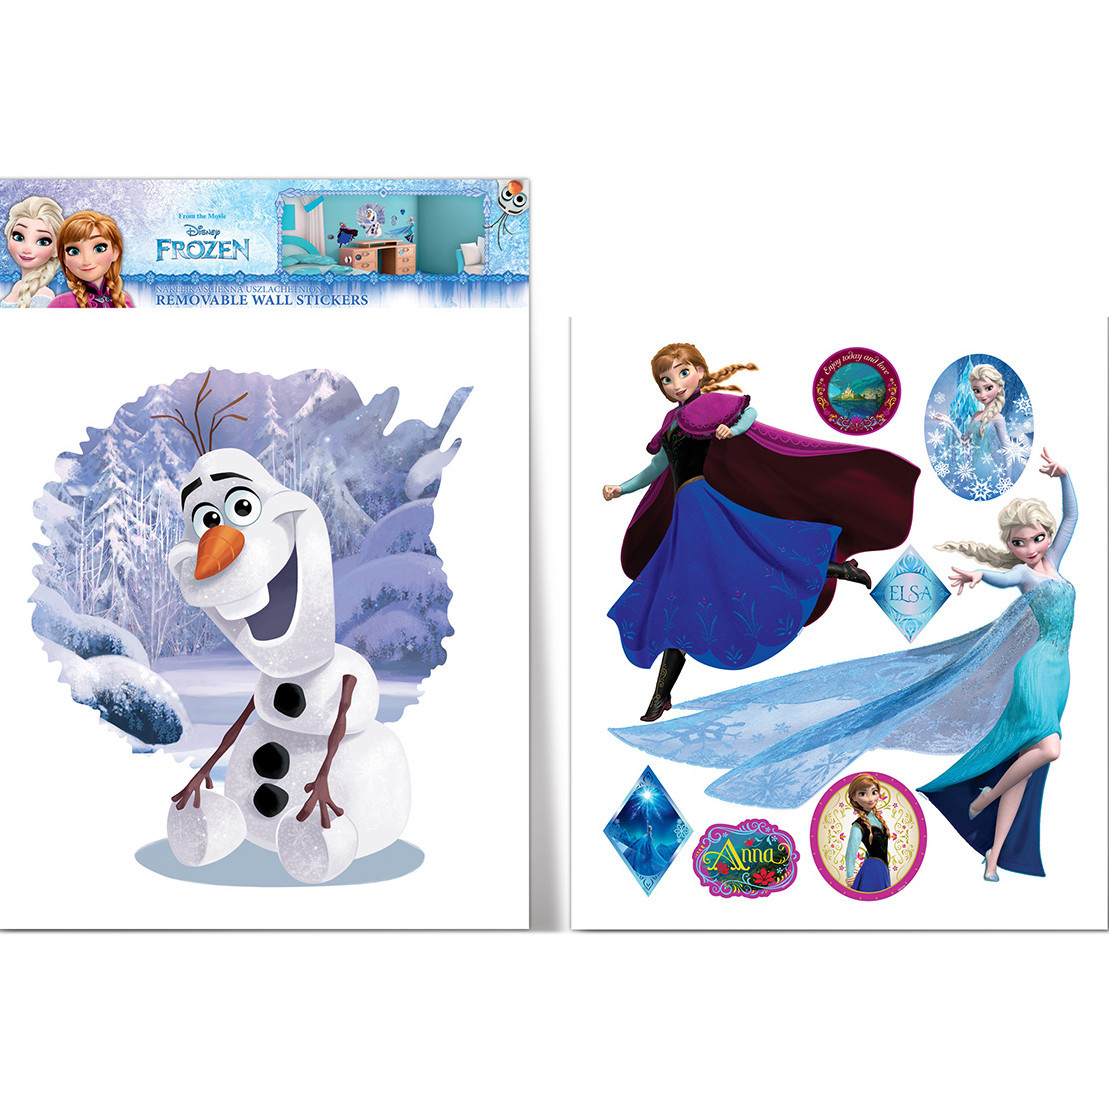 Grand sticker Olaf Elsa et Anna La Reine des Neiges Frozen Disney